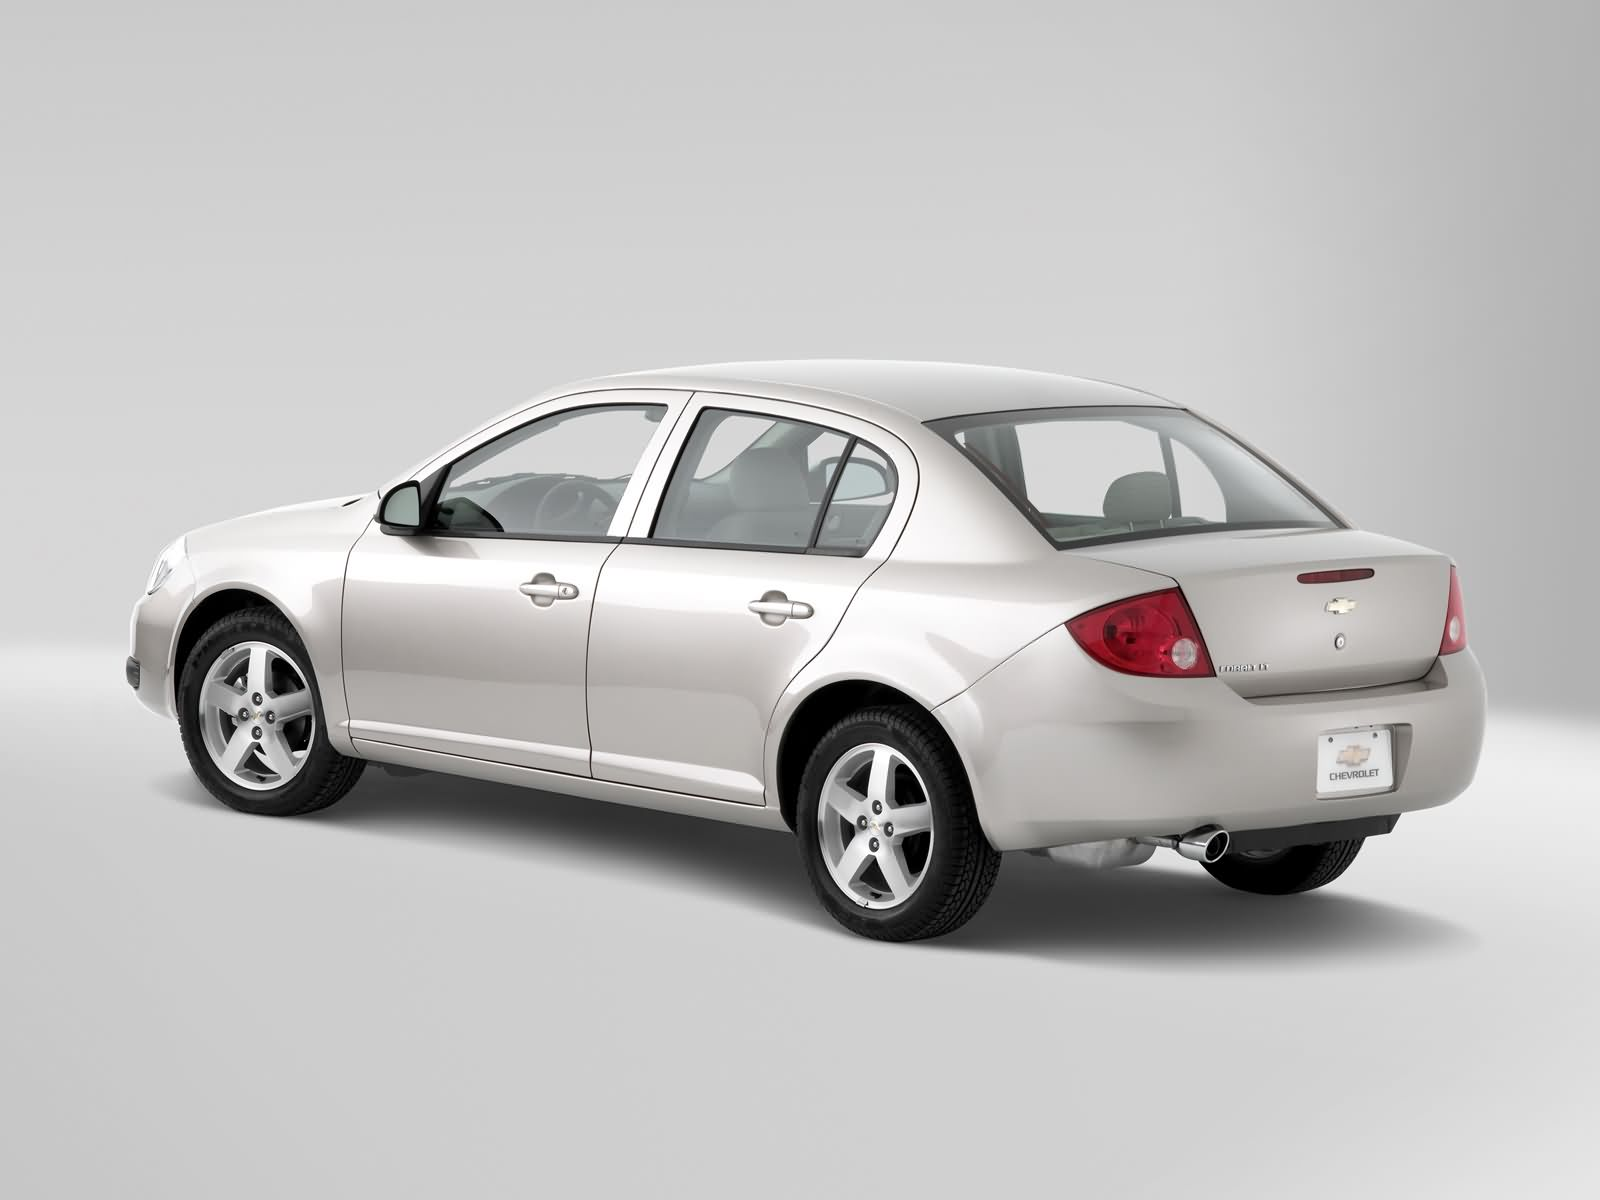 Chevrolet Cobalt photo 7654